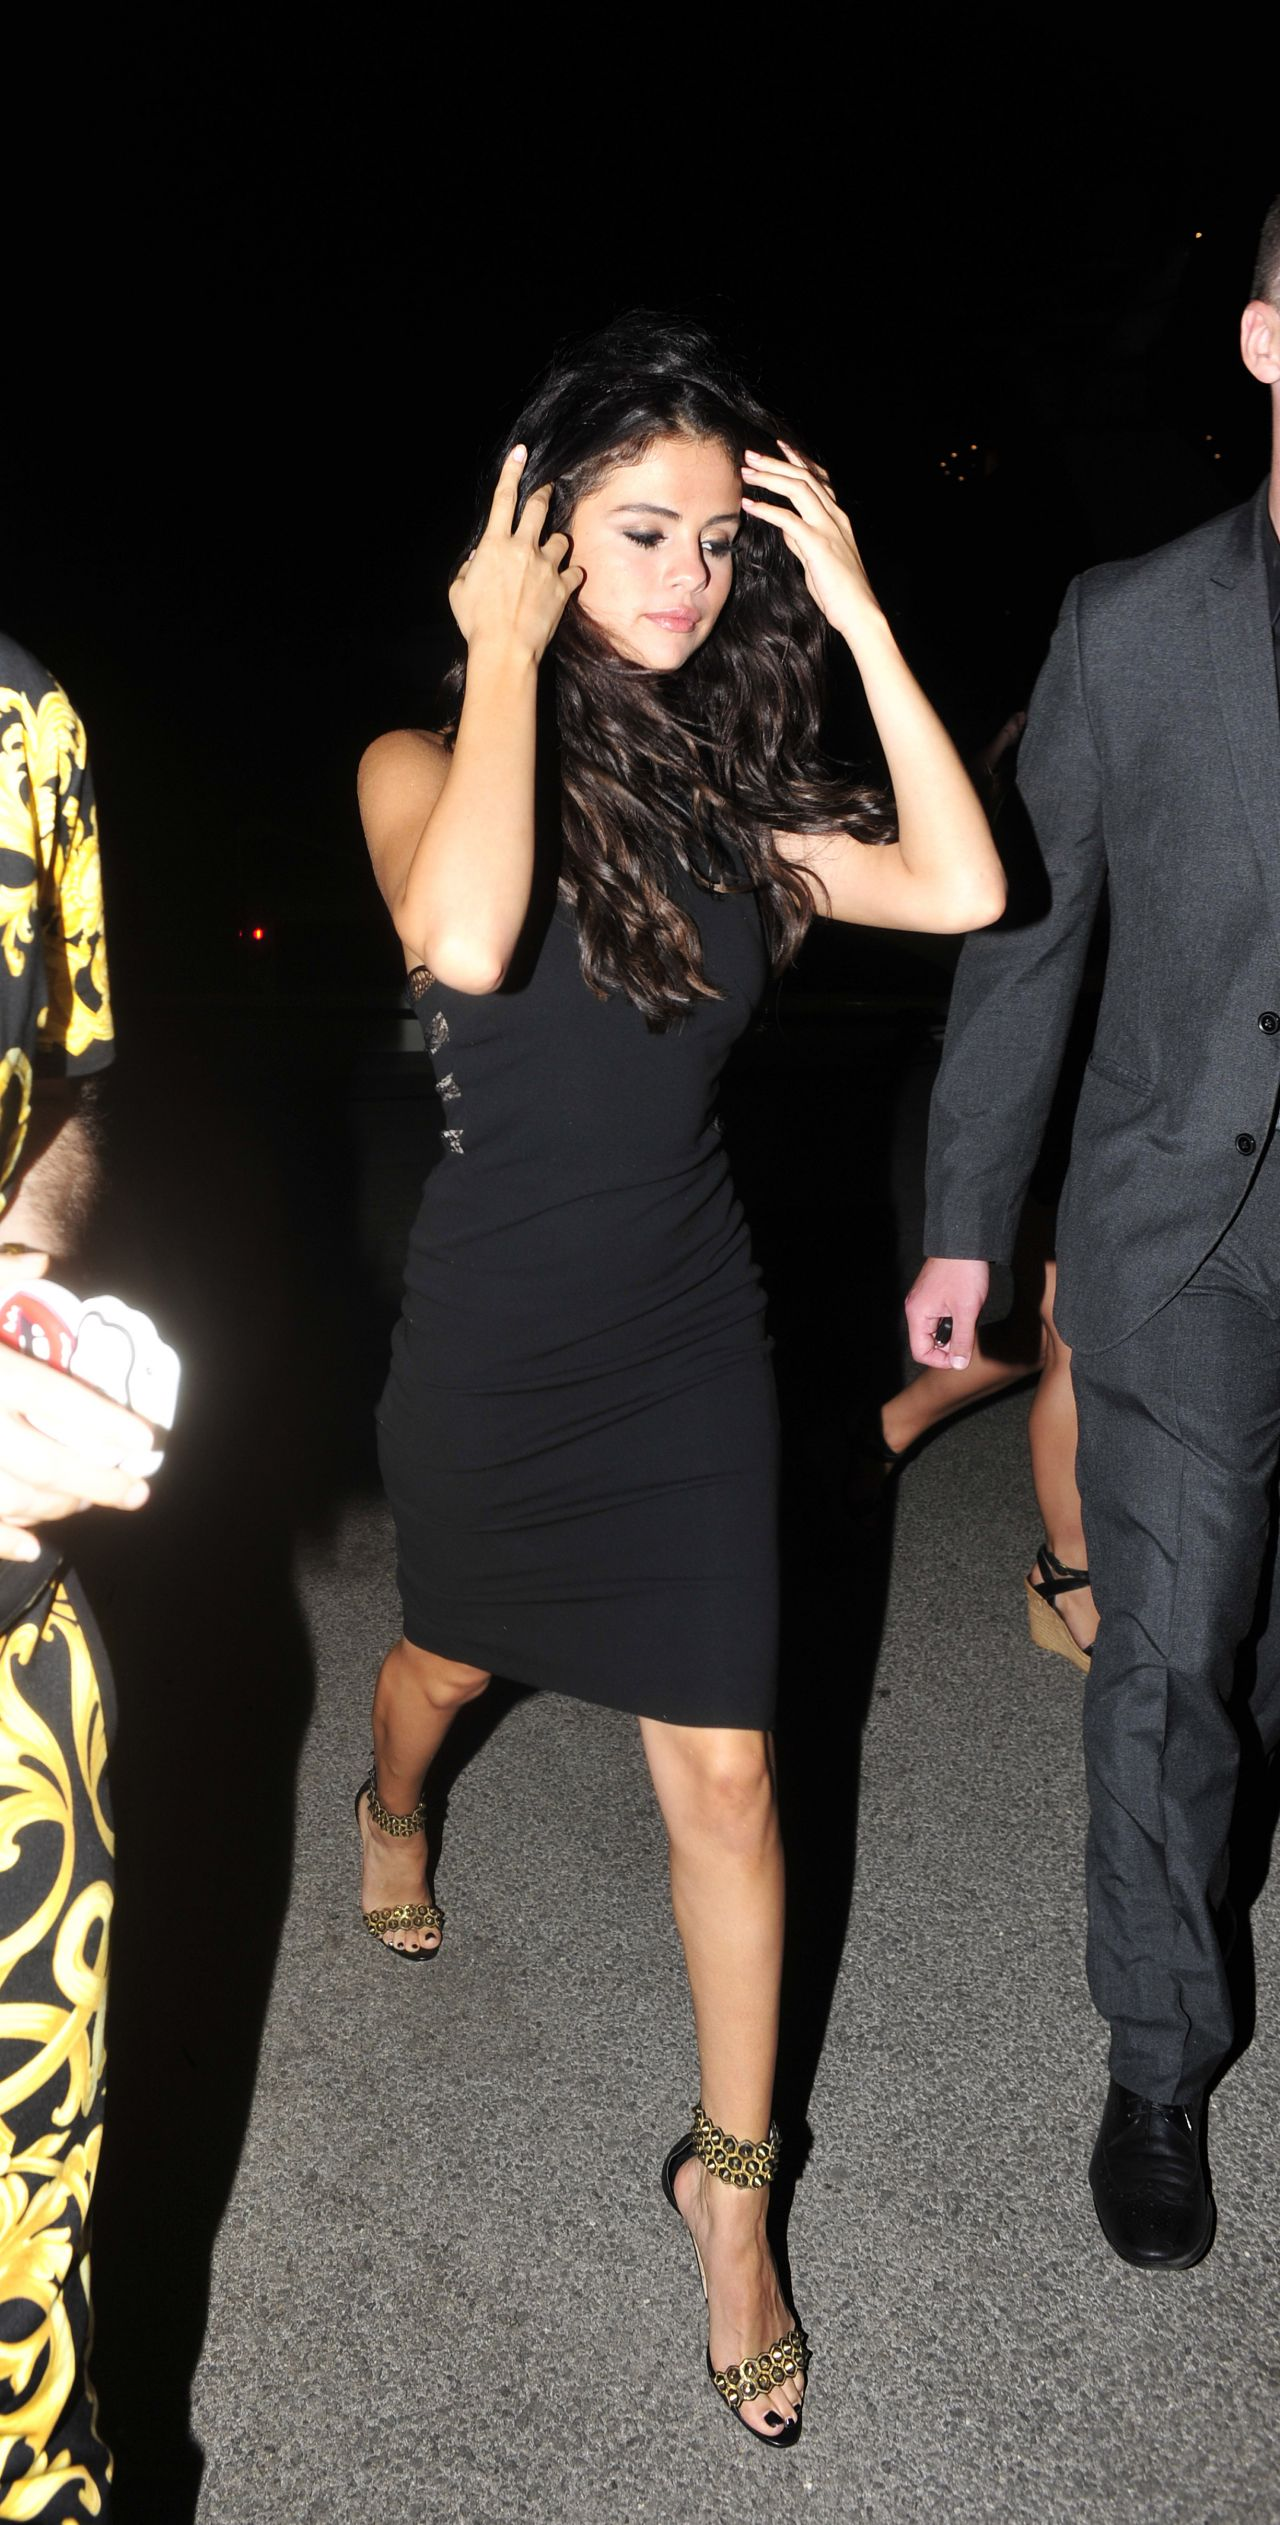 Selena Gomez Night Out Style Going To A Restaurant In